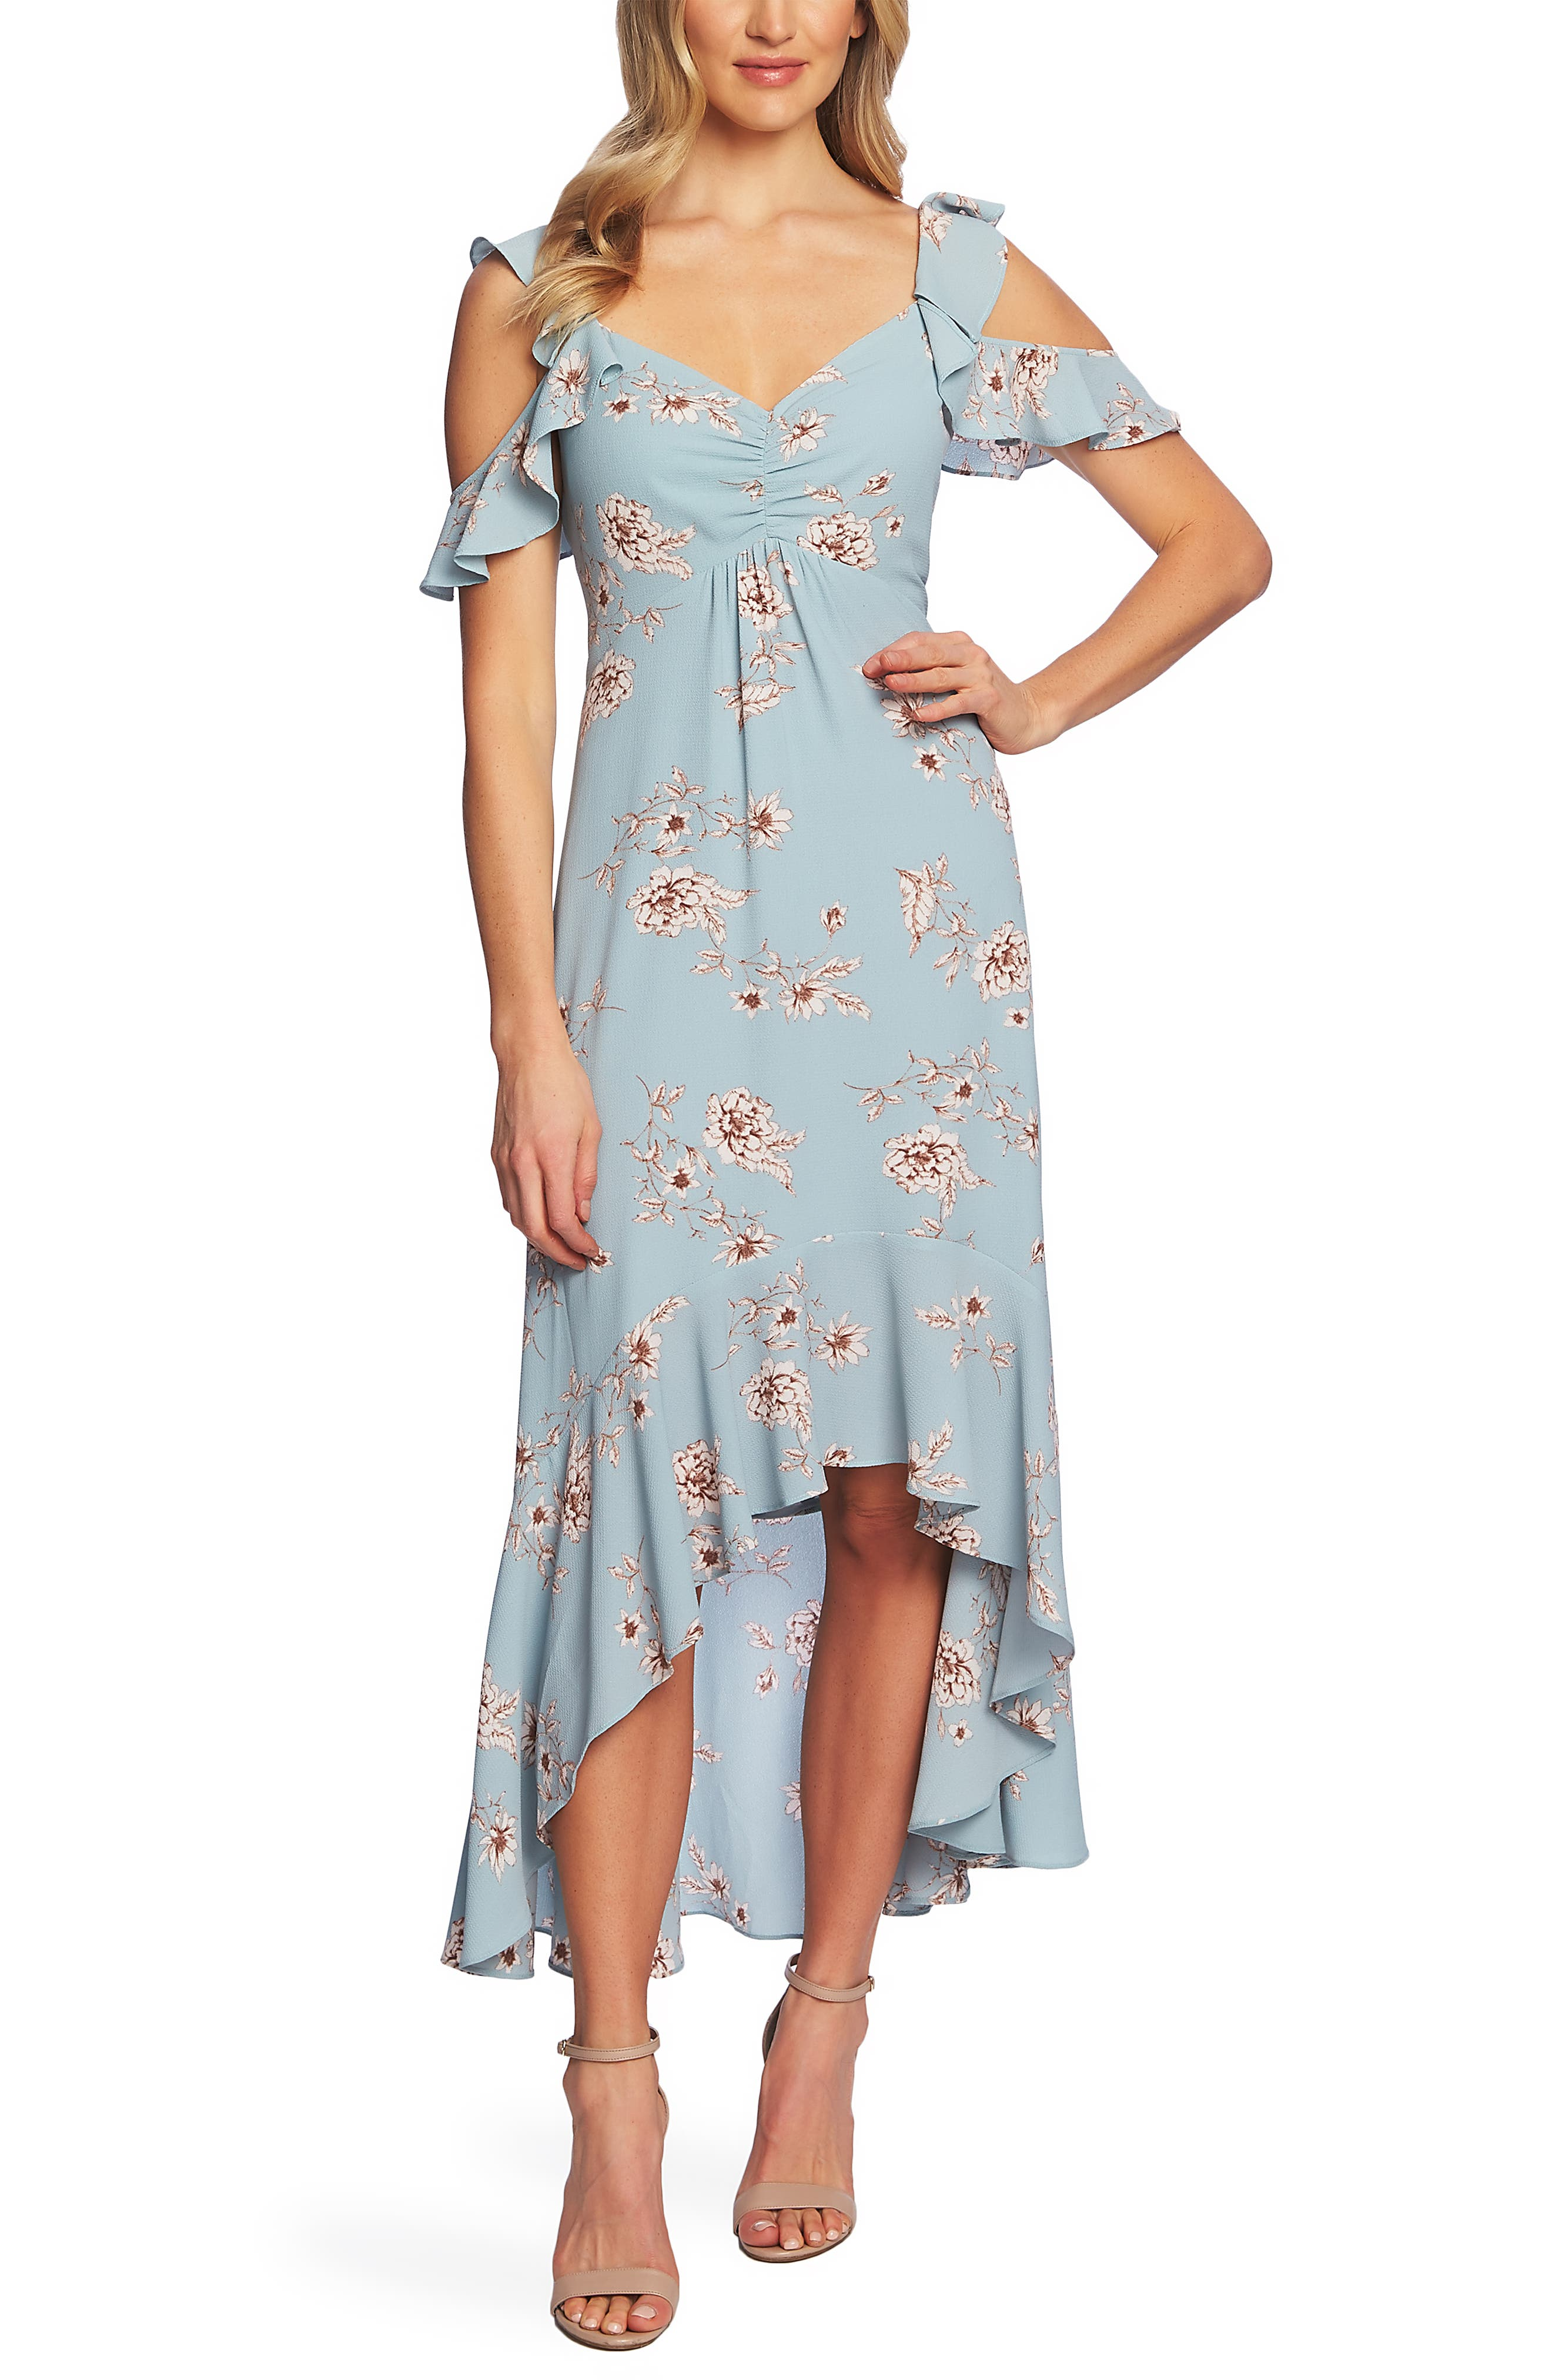 Cece Etched Floral High/low Midi Dress